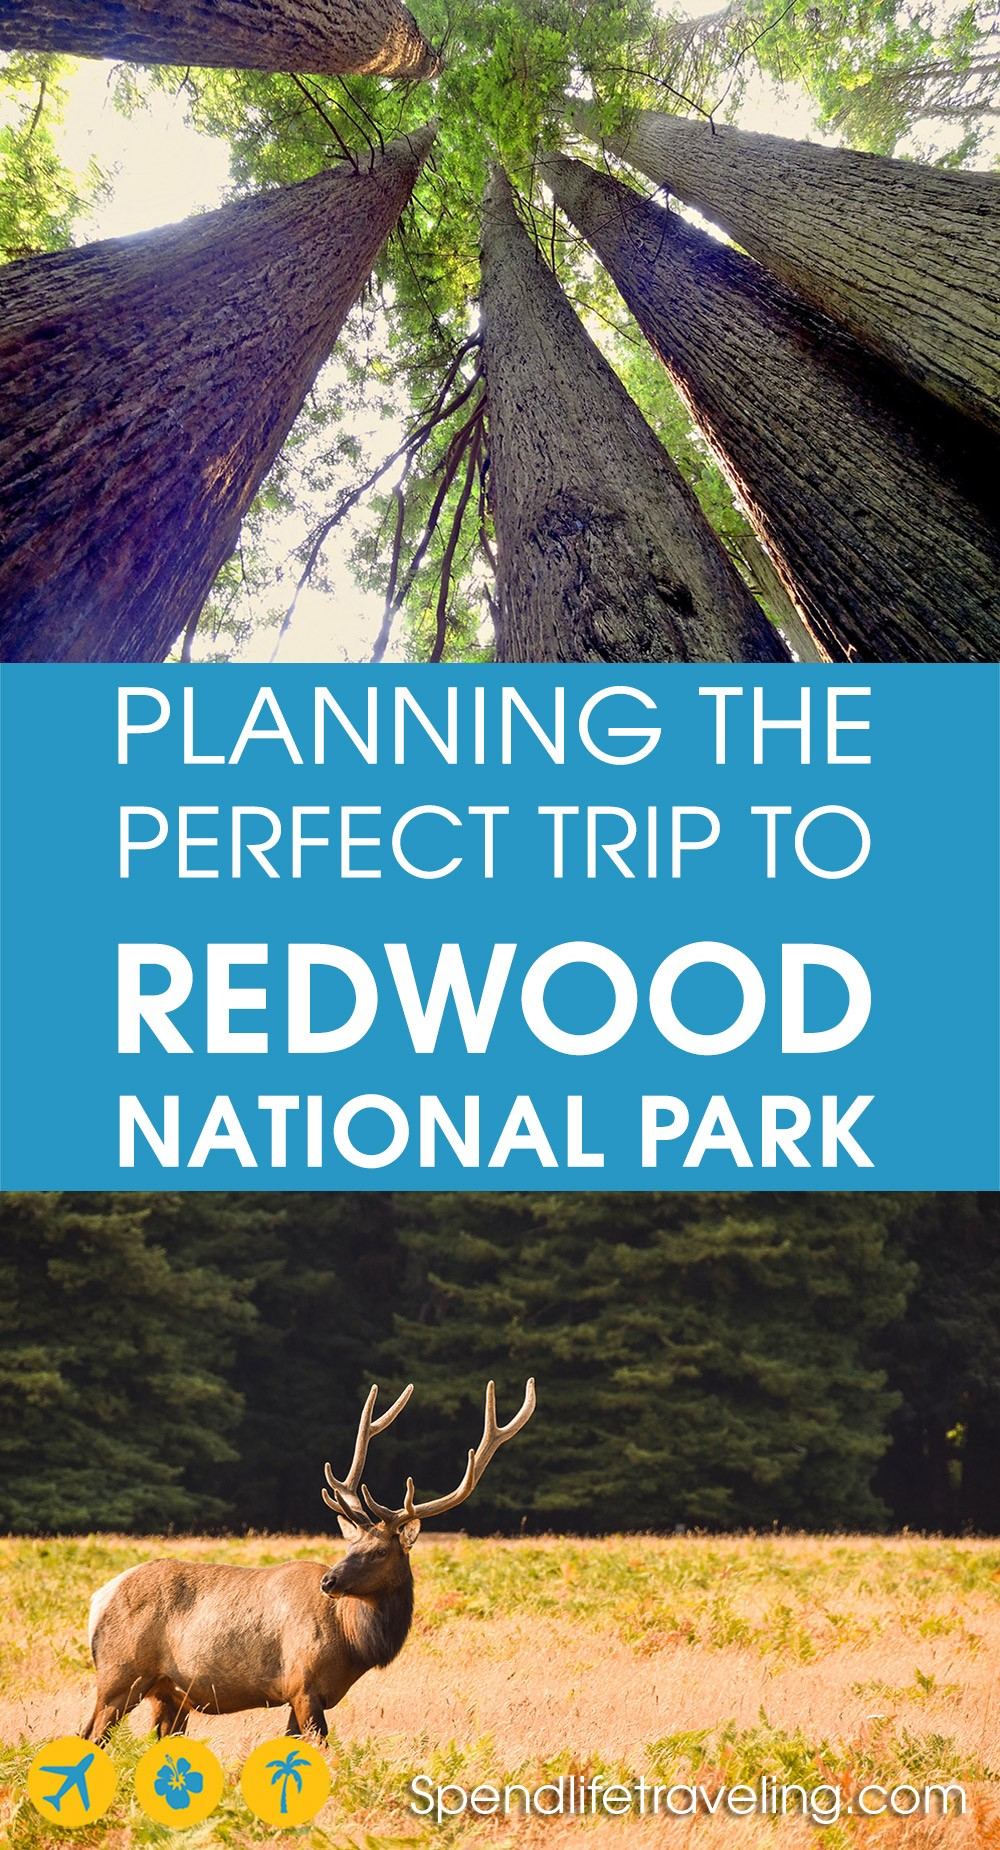 Visiting Redwood National Park, California? This complete guide will tell you everything you need to know. From Redwood National Park camping to things to do in Redwood National Park and the surrounding area.